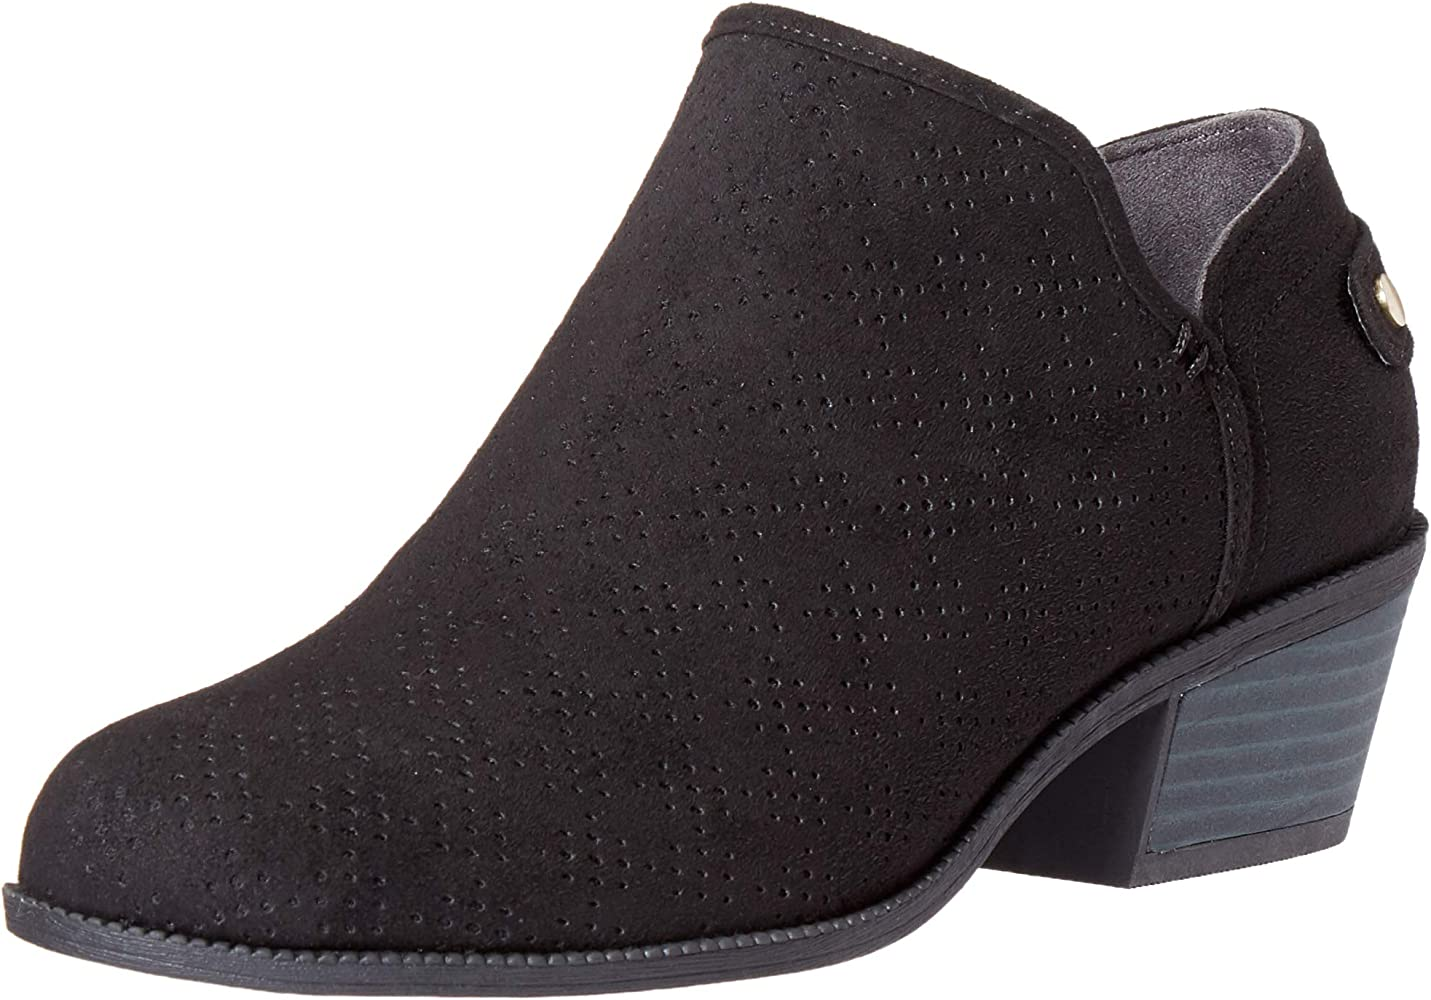 Shoes Women's Bandit Ankle Boot